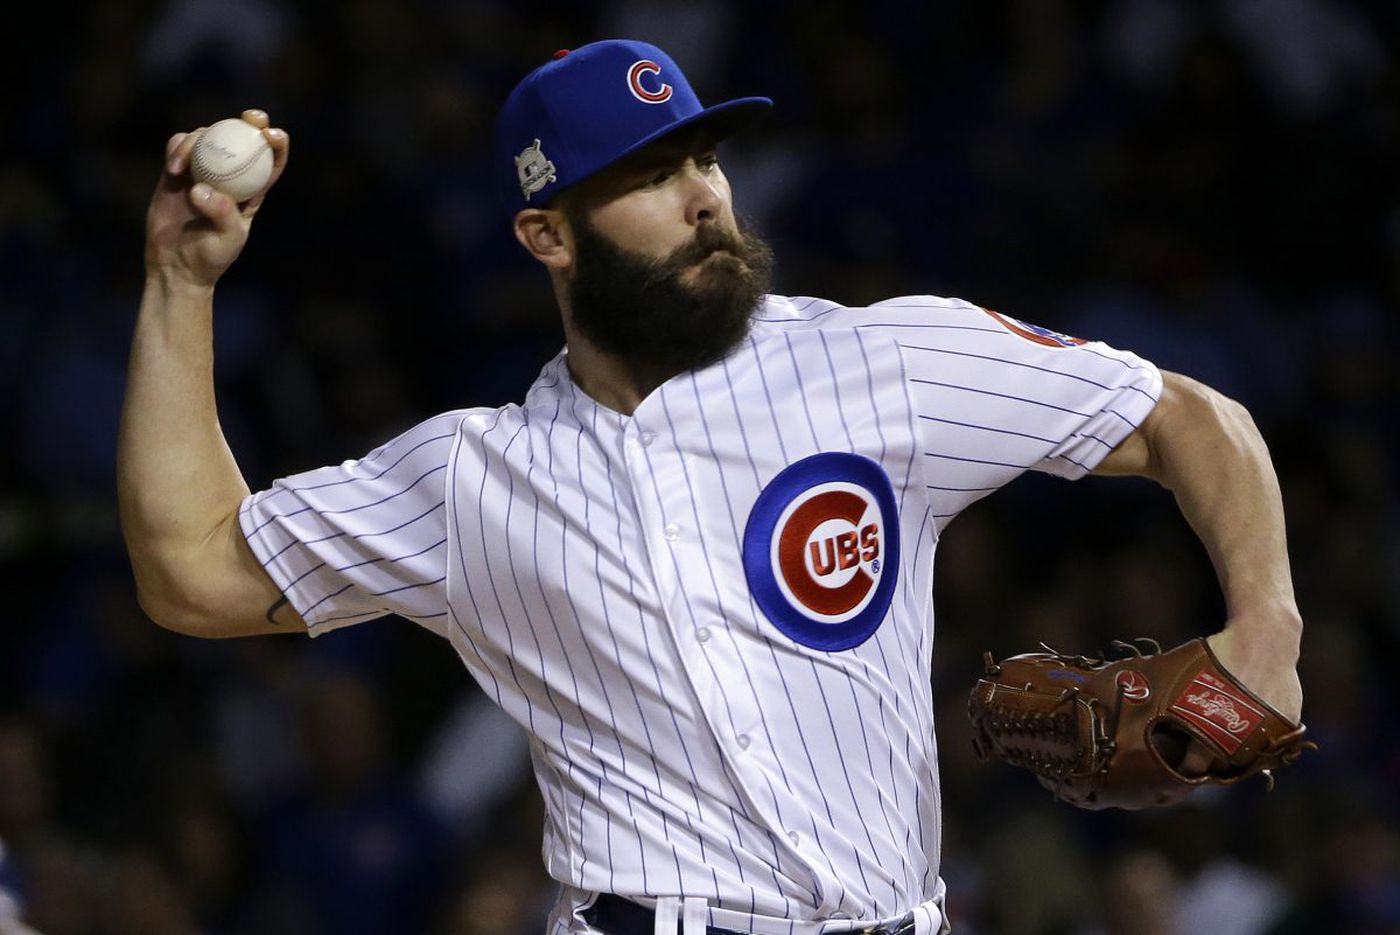 Jake Arrieta's fastball not the only thing that's changed | David Murphy